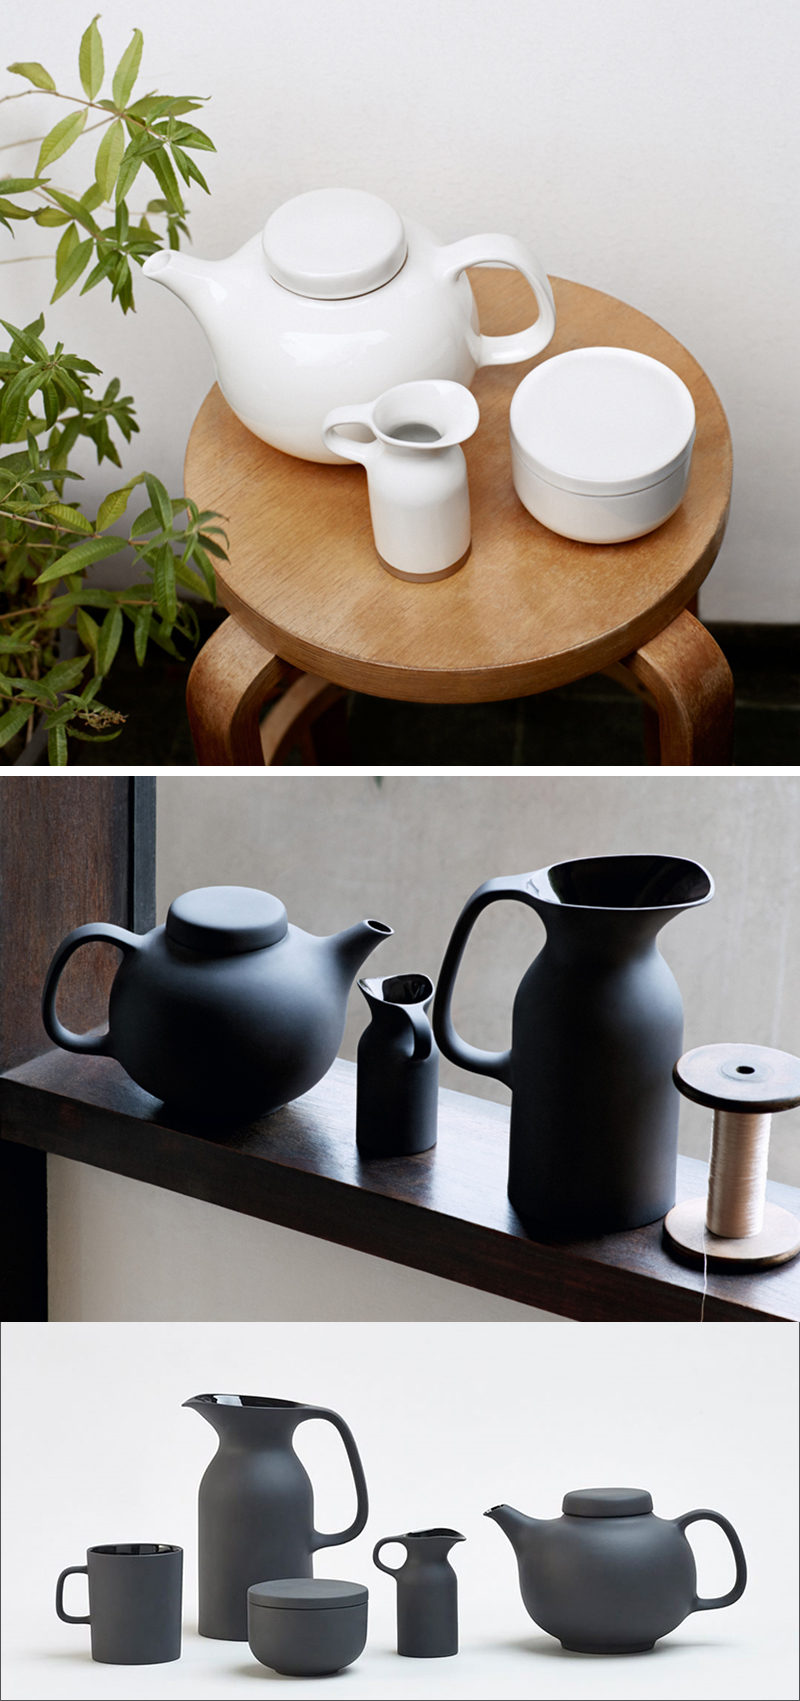 Available in both black and white finishes, this modern ceramic tea set puts a spin on the traditional design of the tea pot and milk jug and gives it a contemporary look with the matte finish.